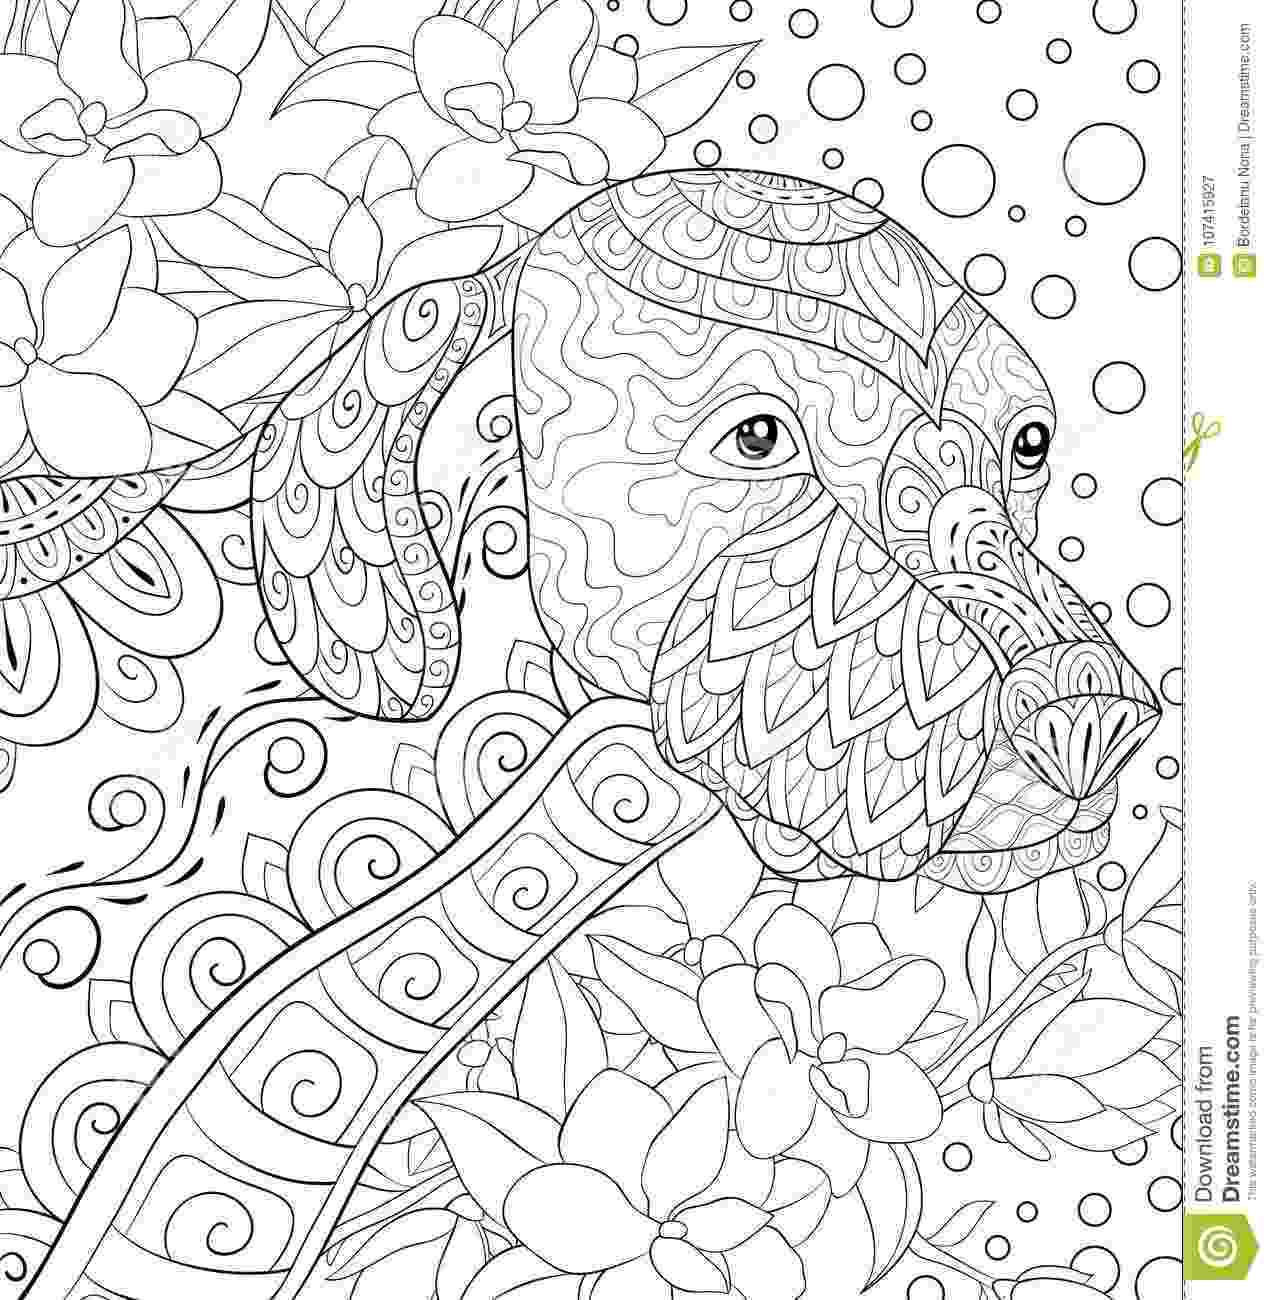 relaxing coloring pages adult coloring page mandala stock vector illustration coloring relaxing pages